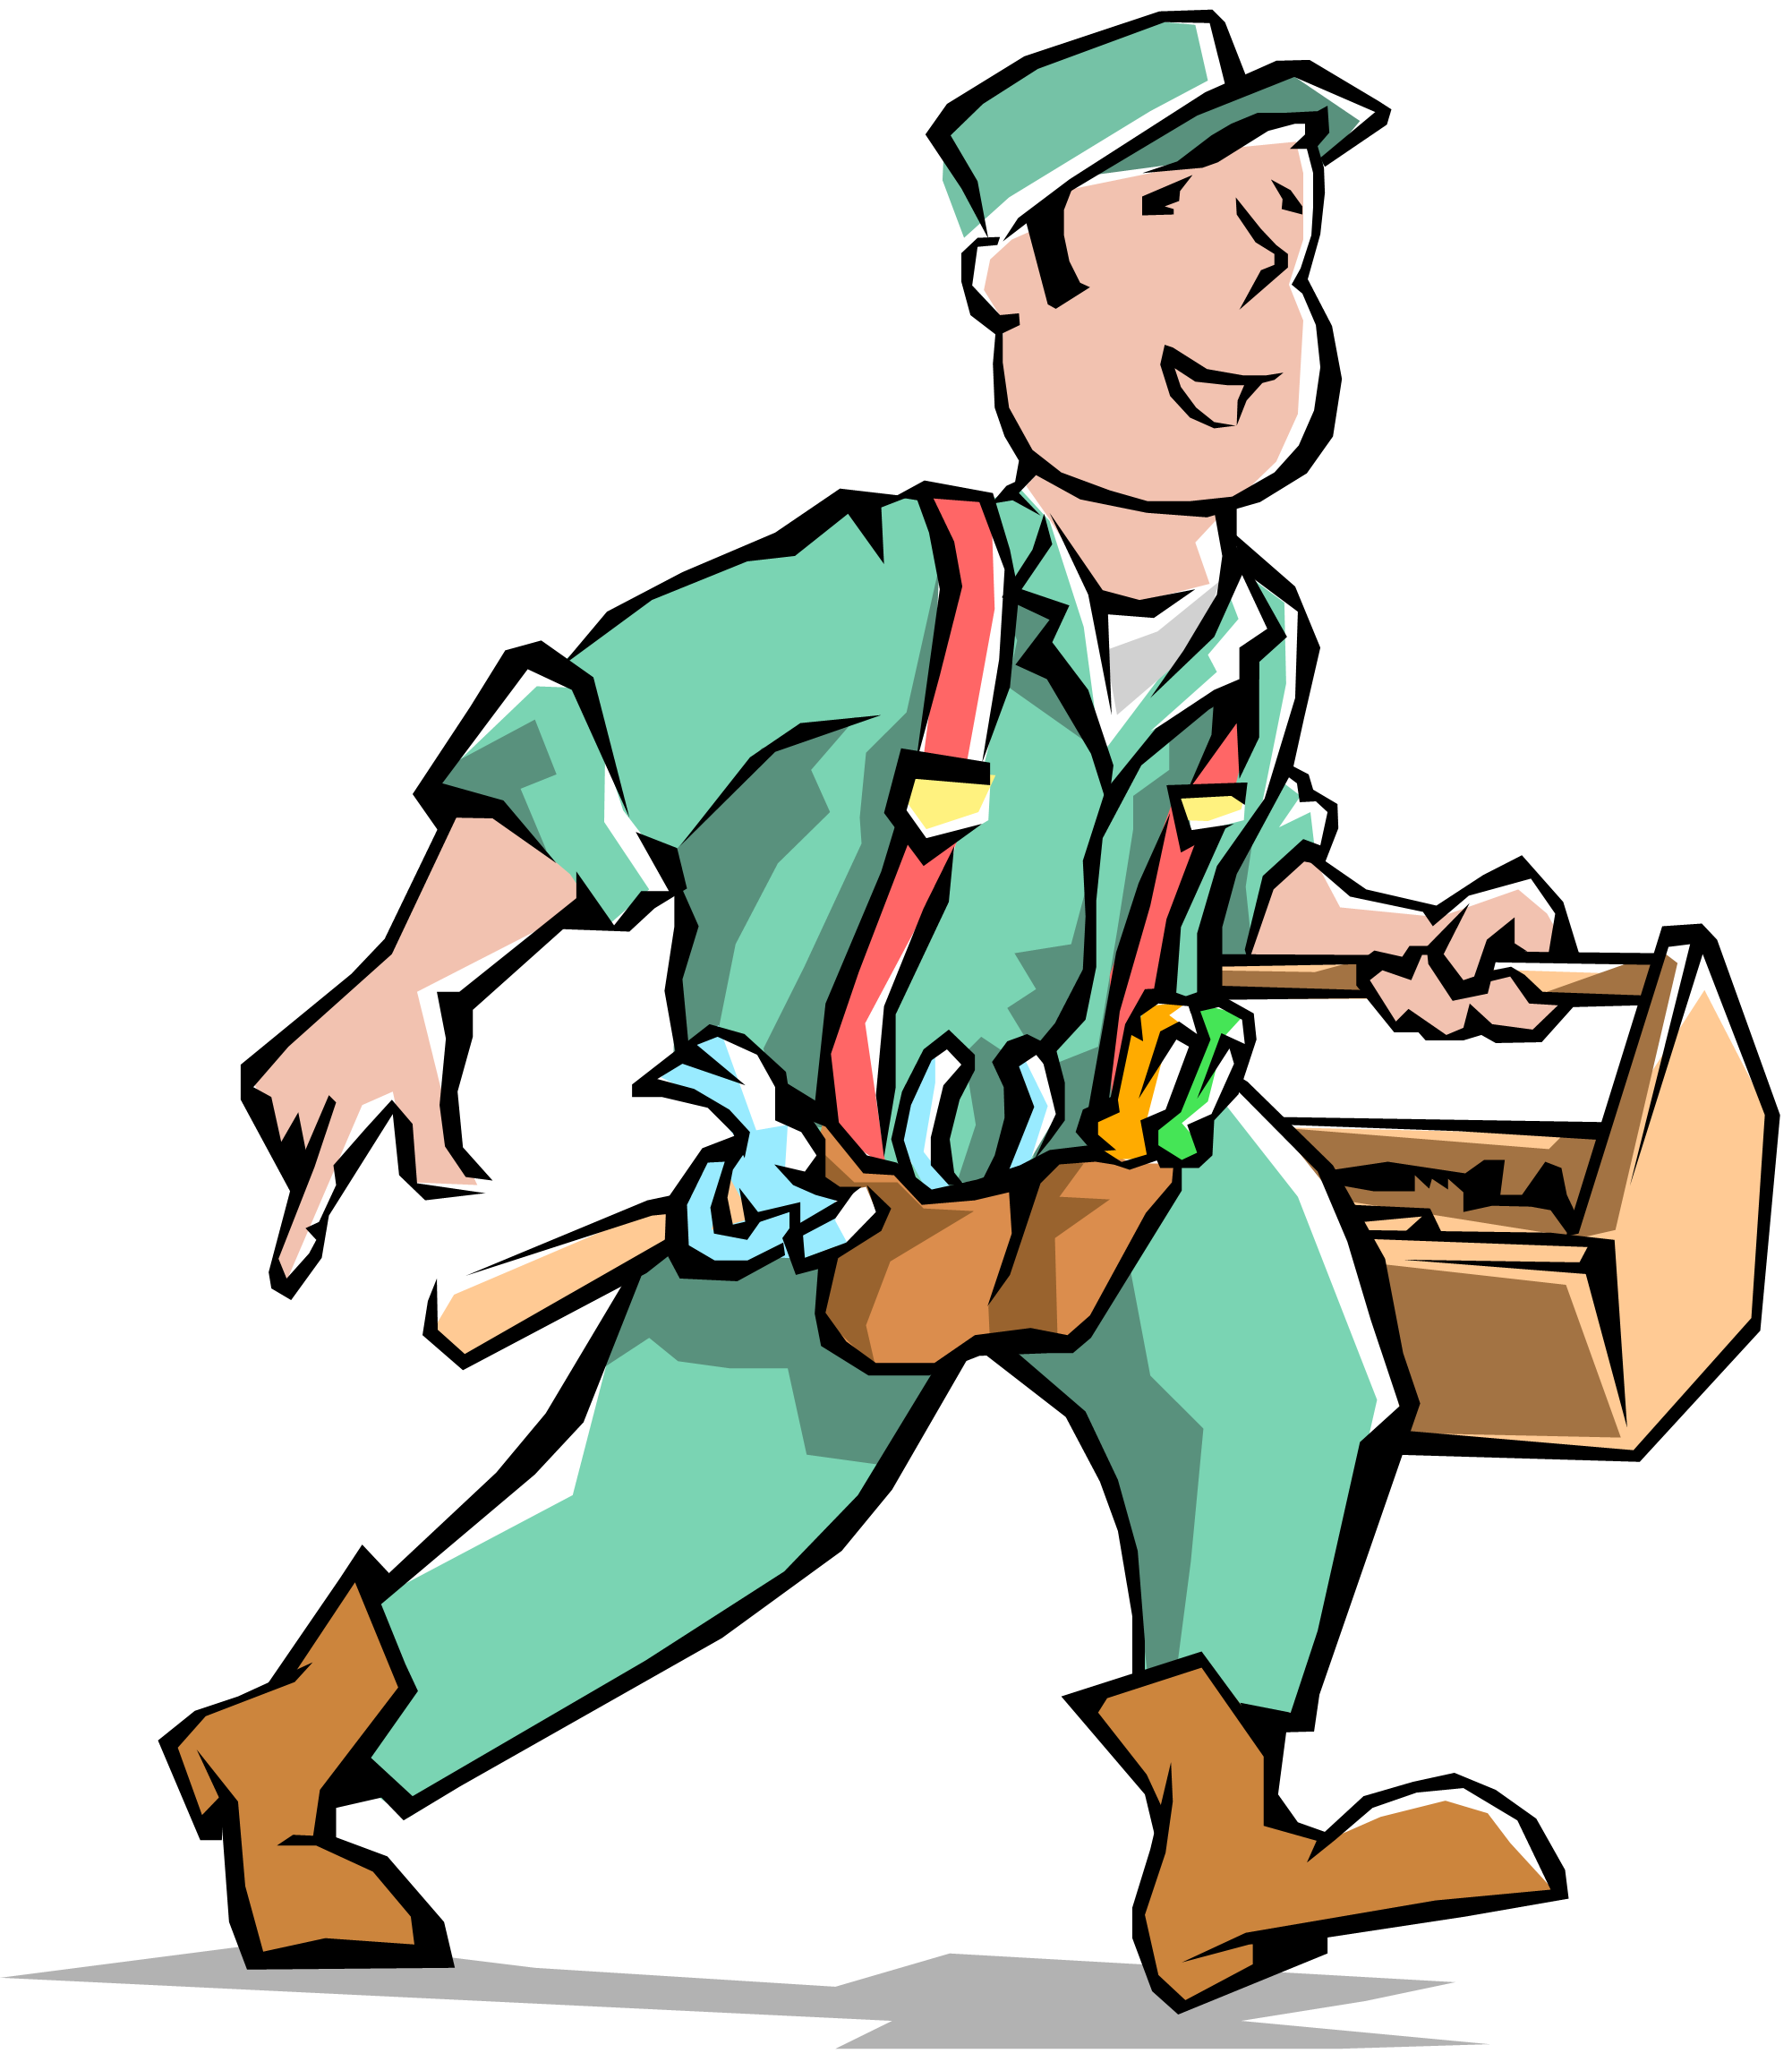 Free Handyman Cliparts, Download Free Clip Art, Free Clip.